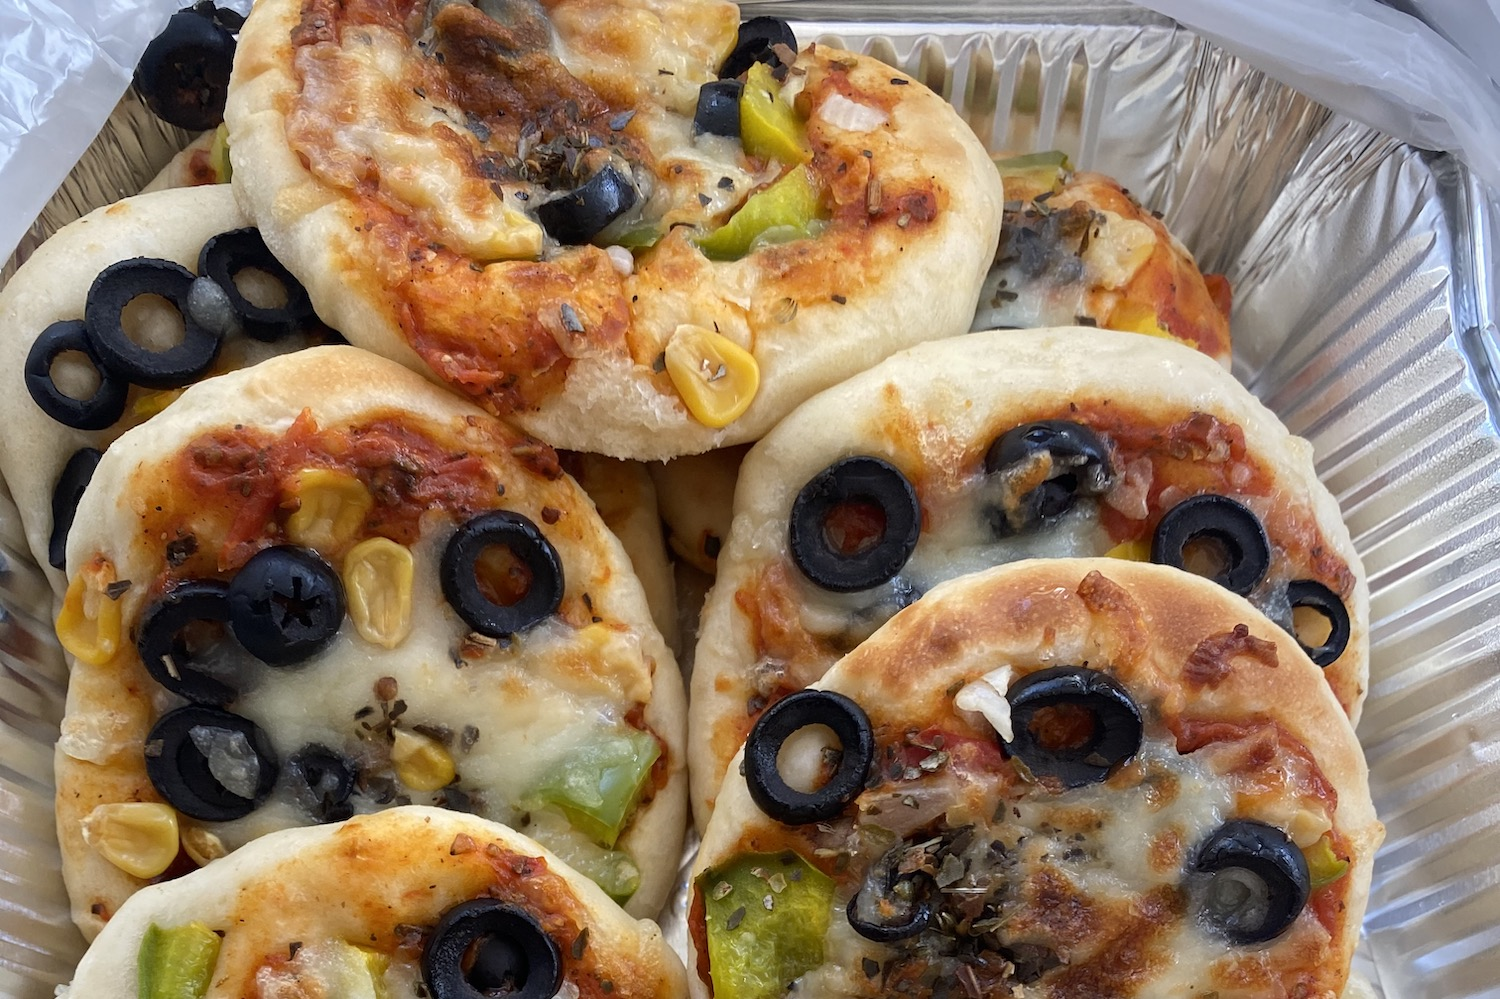 While in quarantine, Tala's mother drops off her favorite homemade pizza. (Photo courtesy of Tala Shurrab)